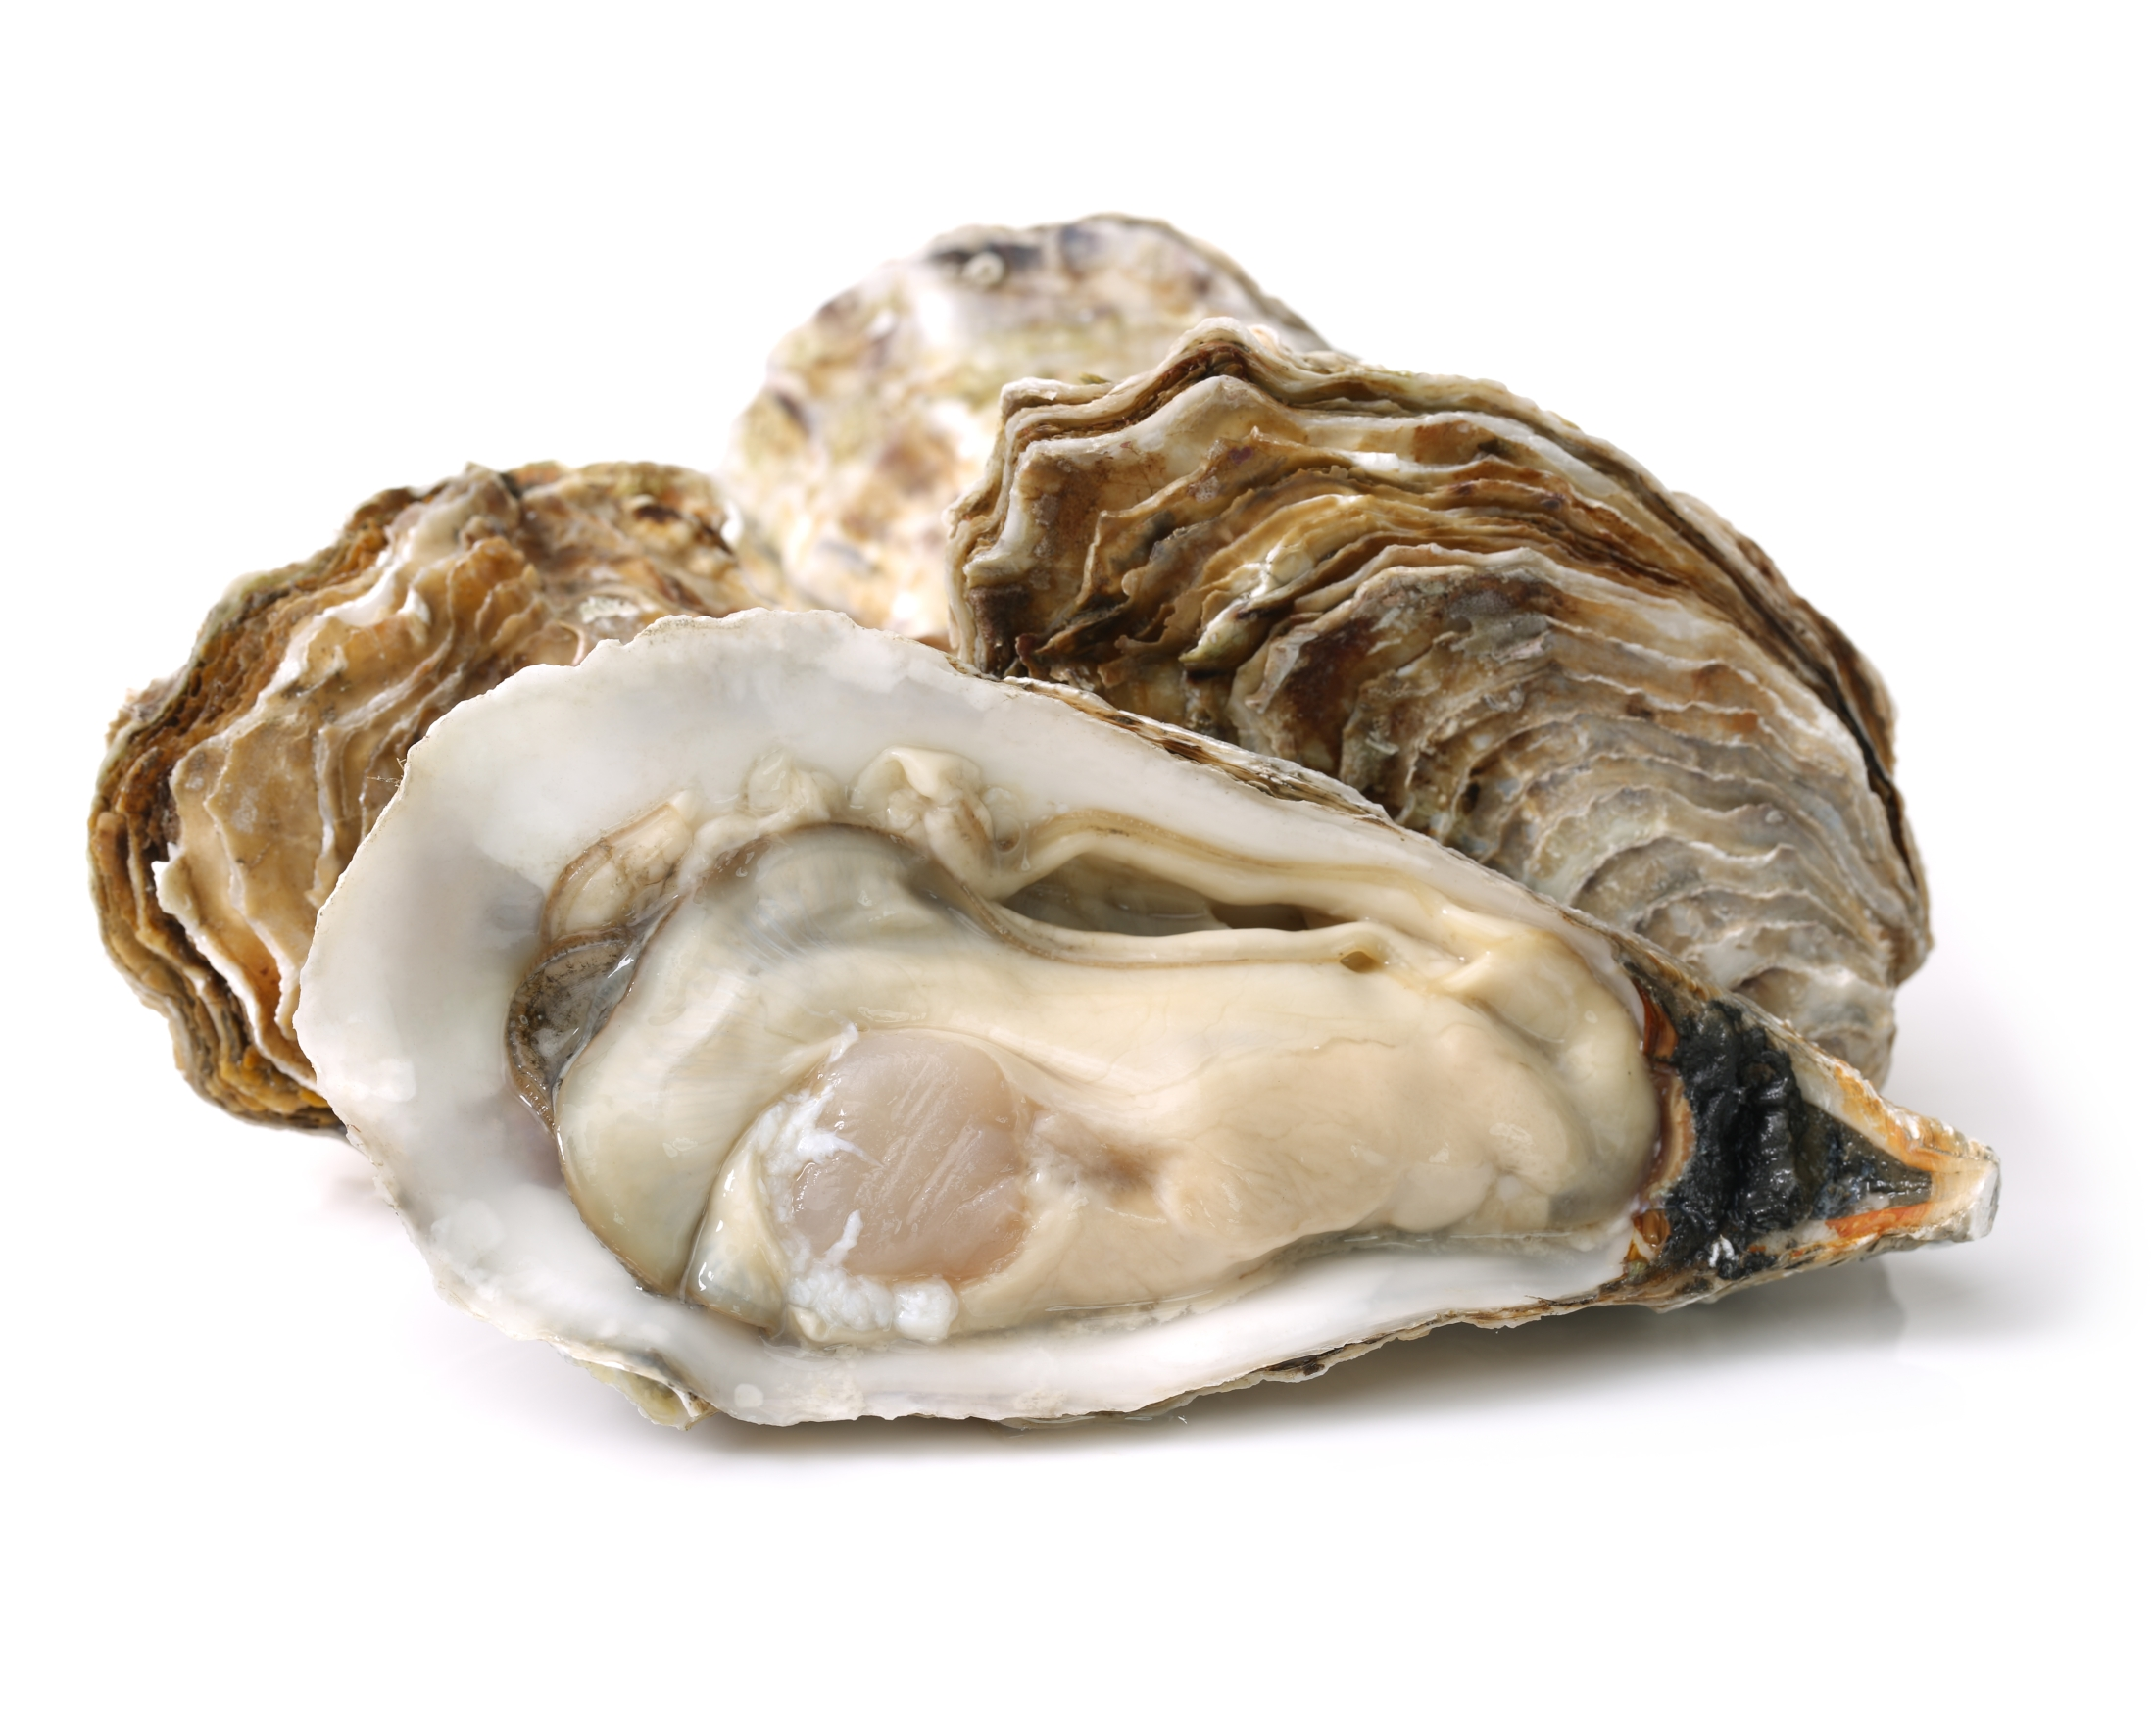 The truth about oysters